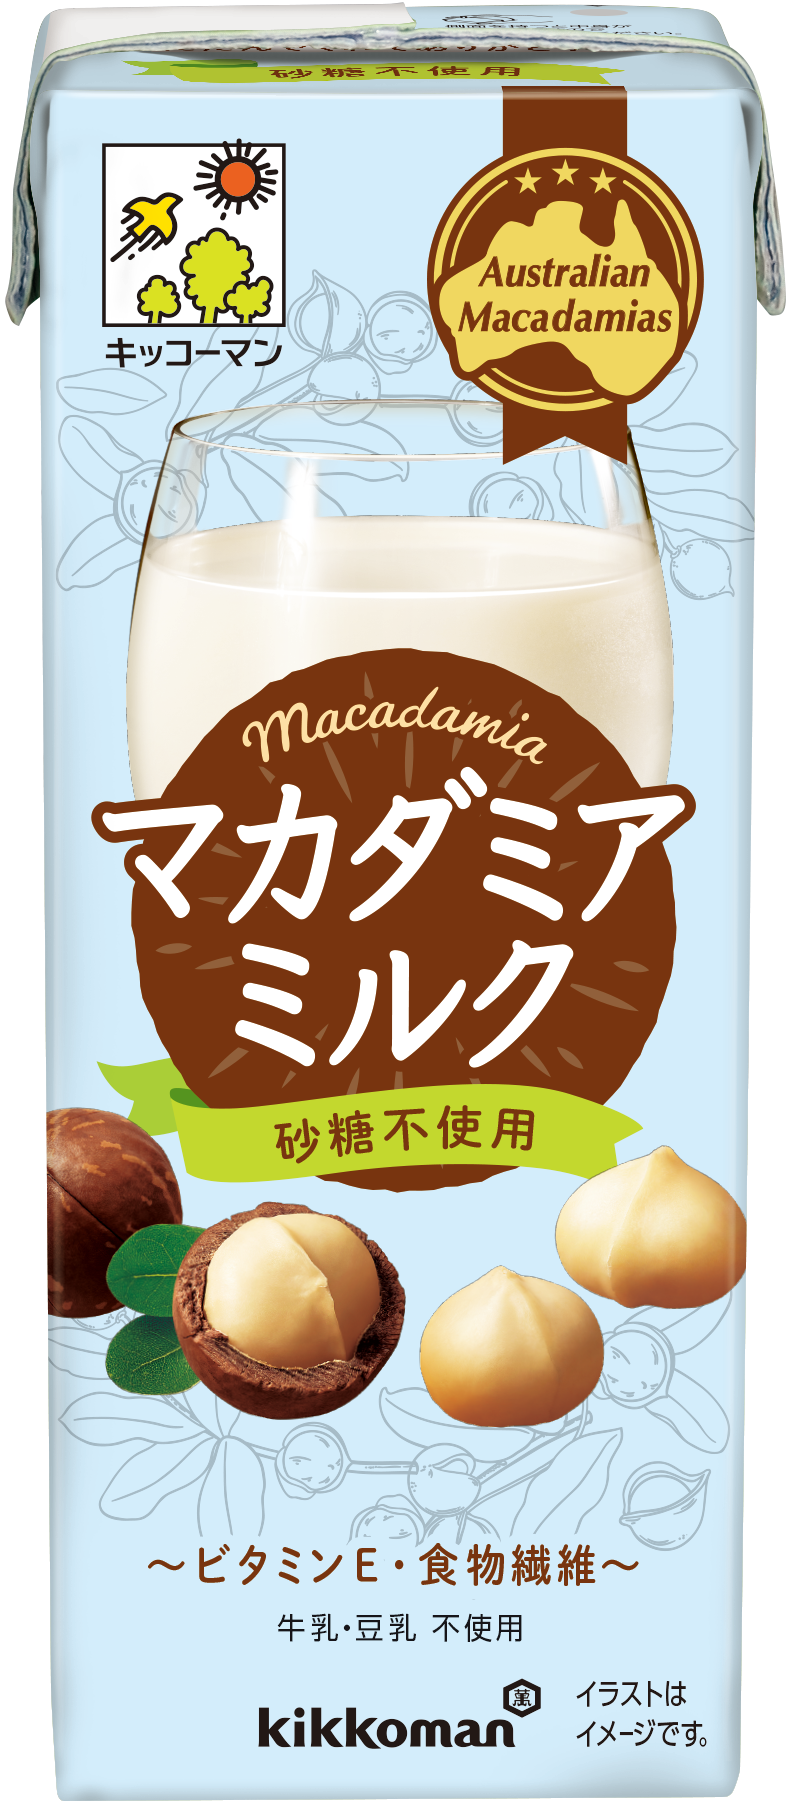 Kikkoman Macadamia Nut Milk no sugar